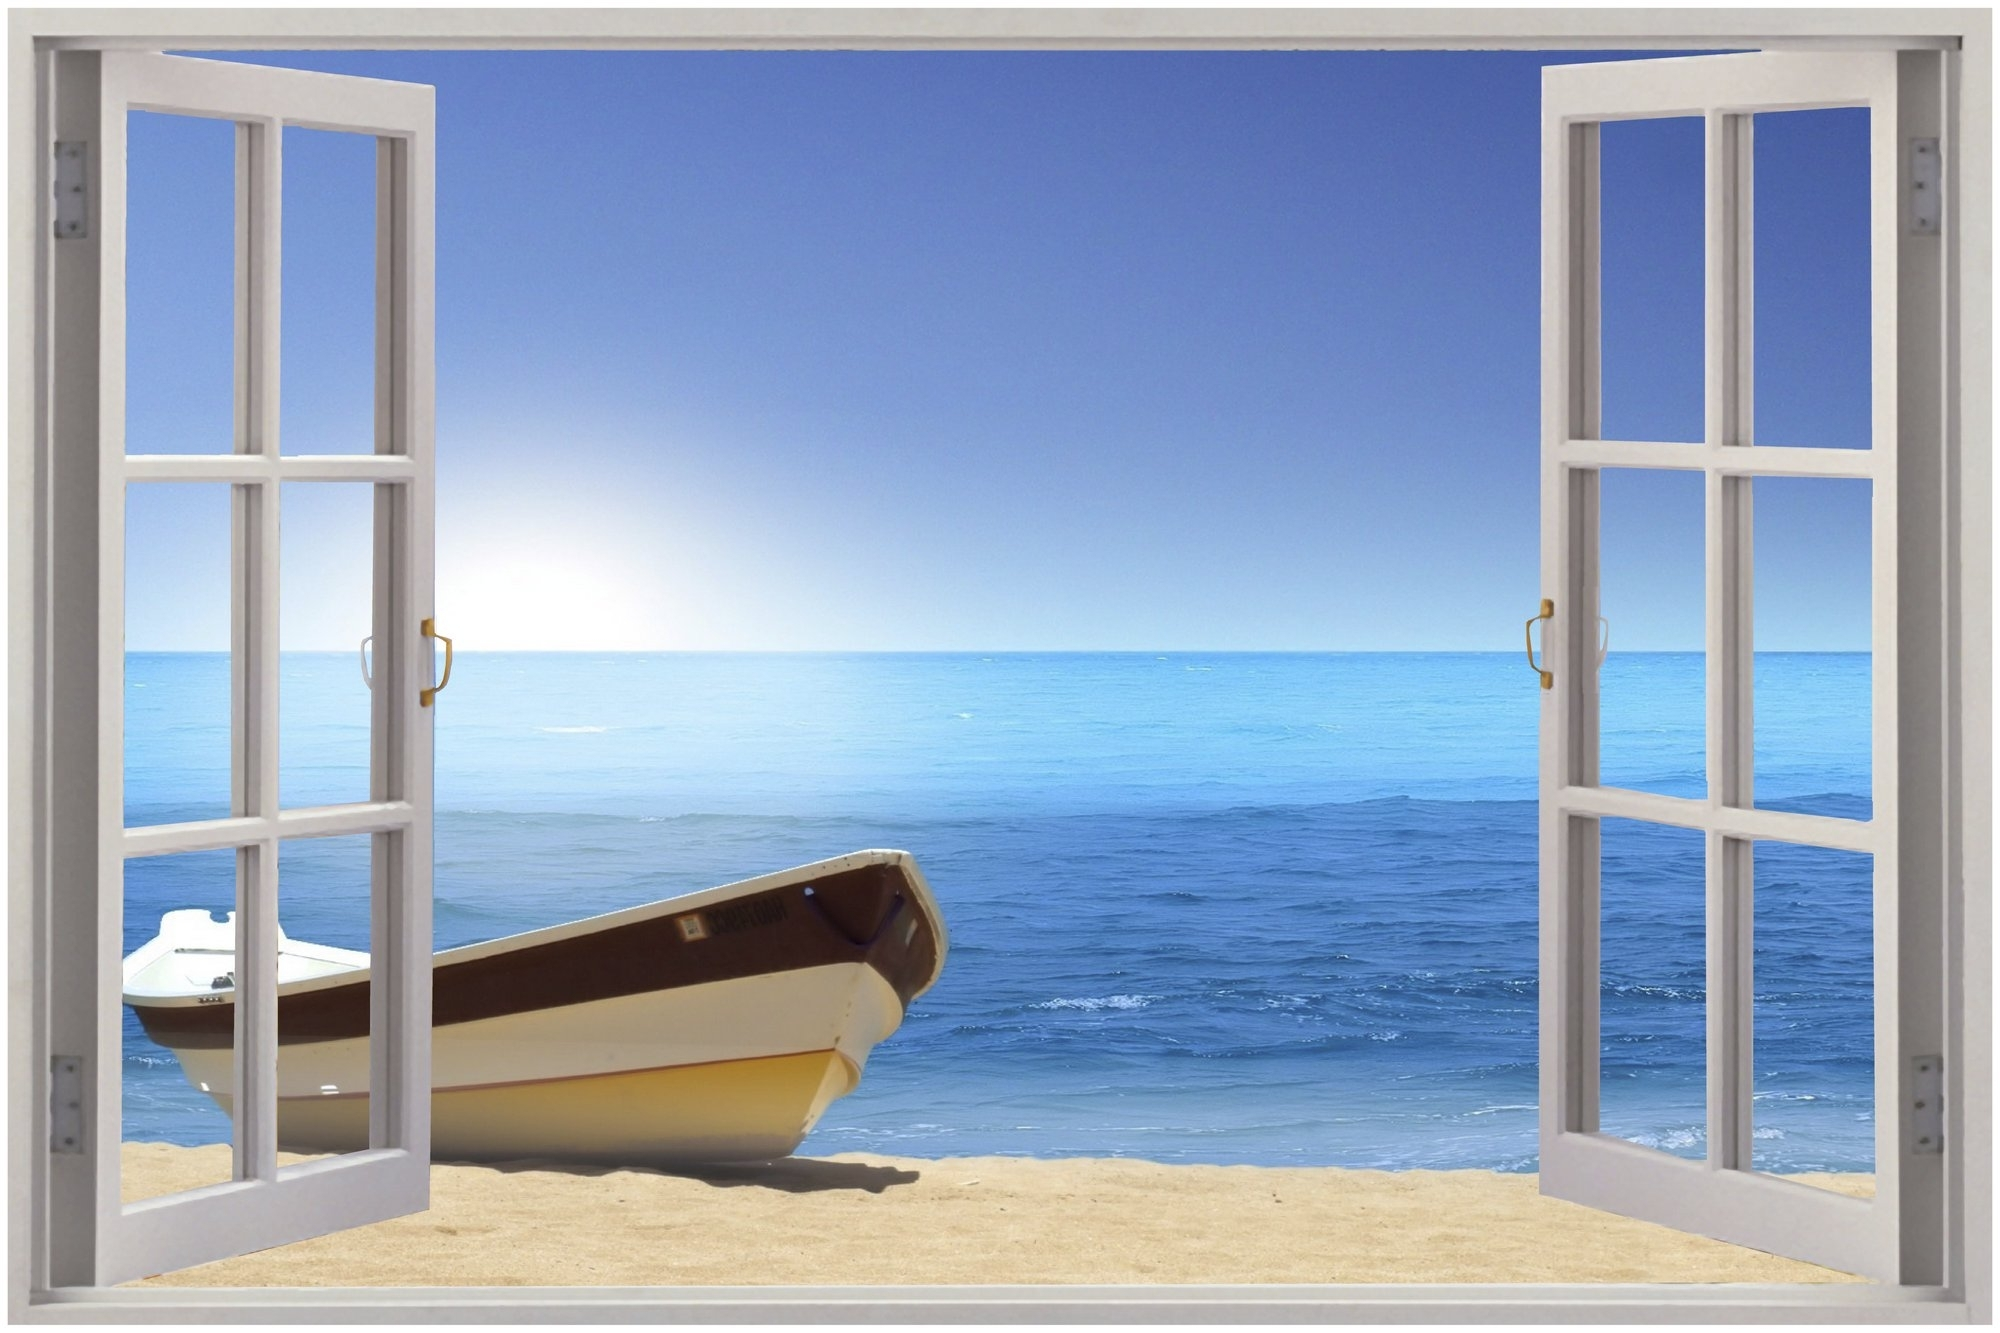 Blue Hd Wall Decal 3d Intended For Recent 3d Wall Art Window (View 8 of 15)